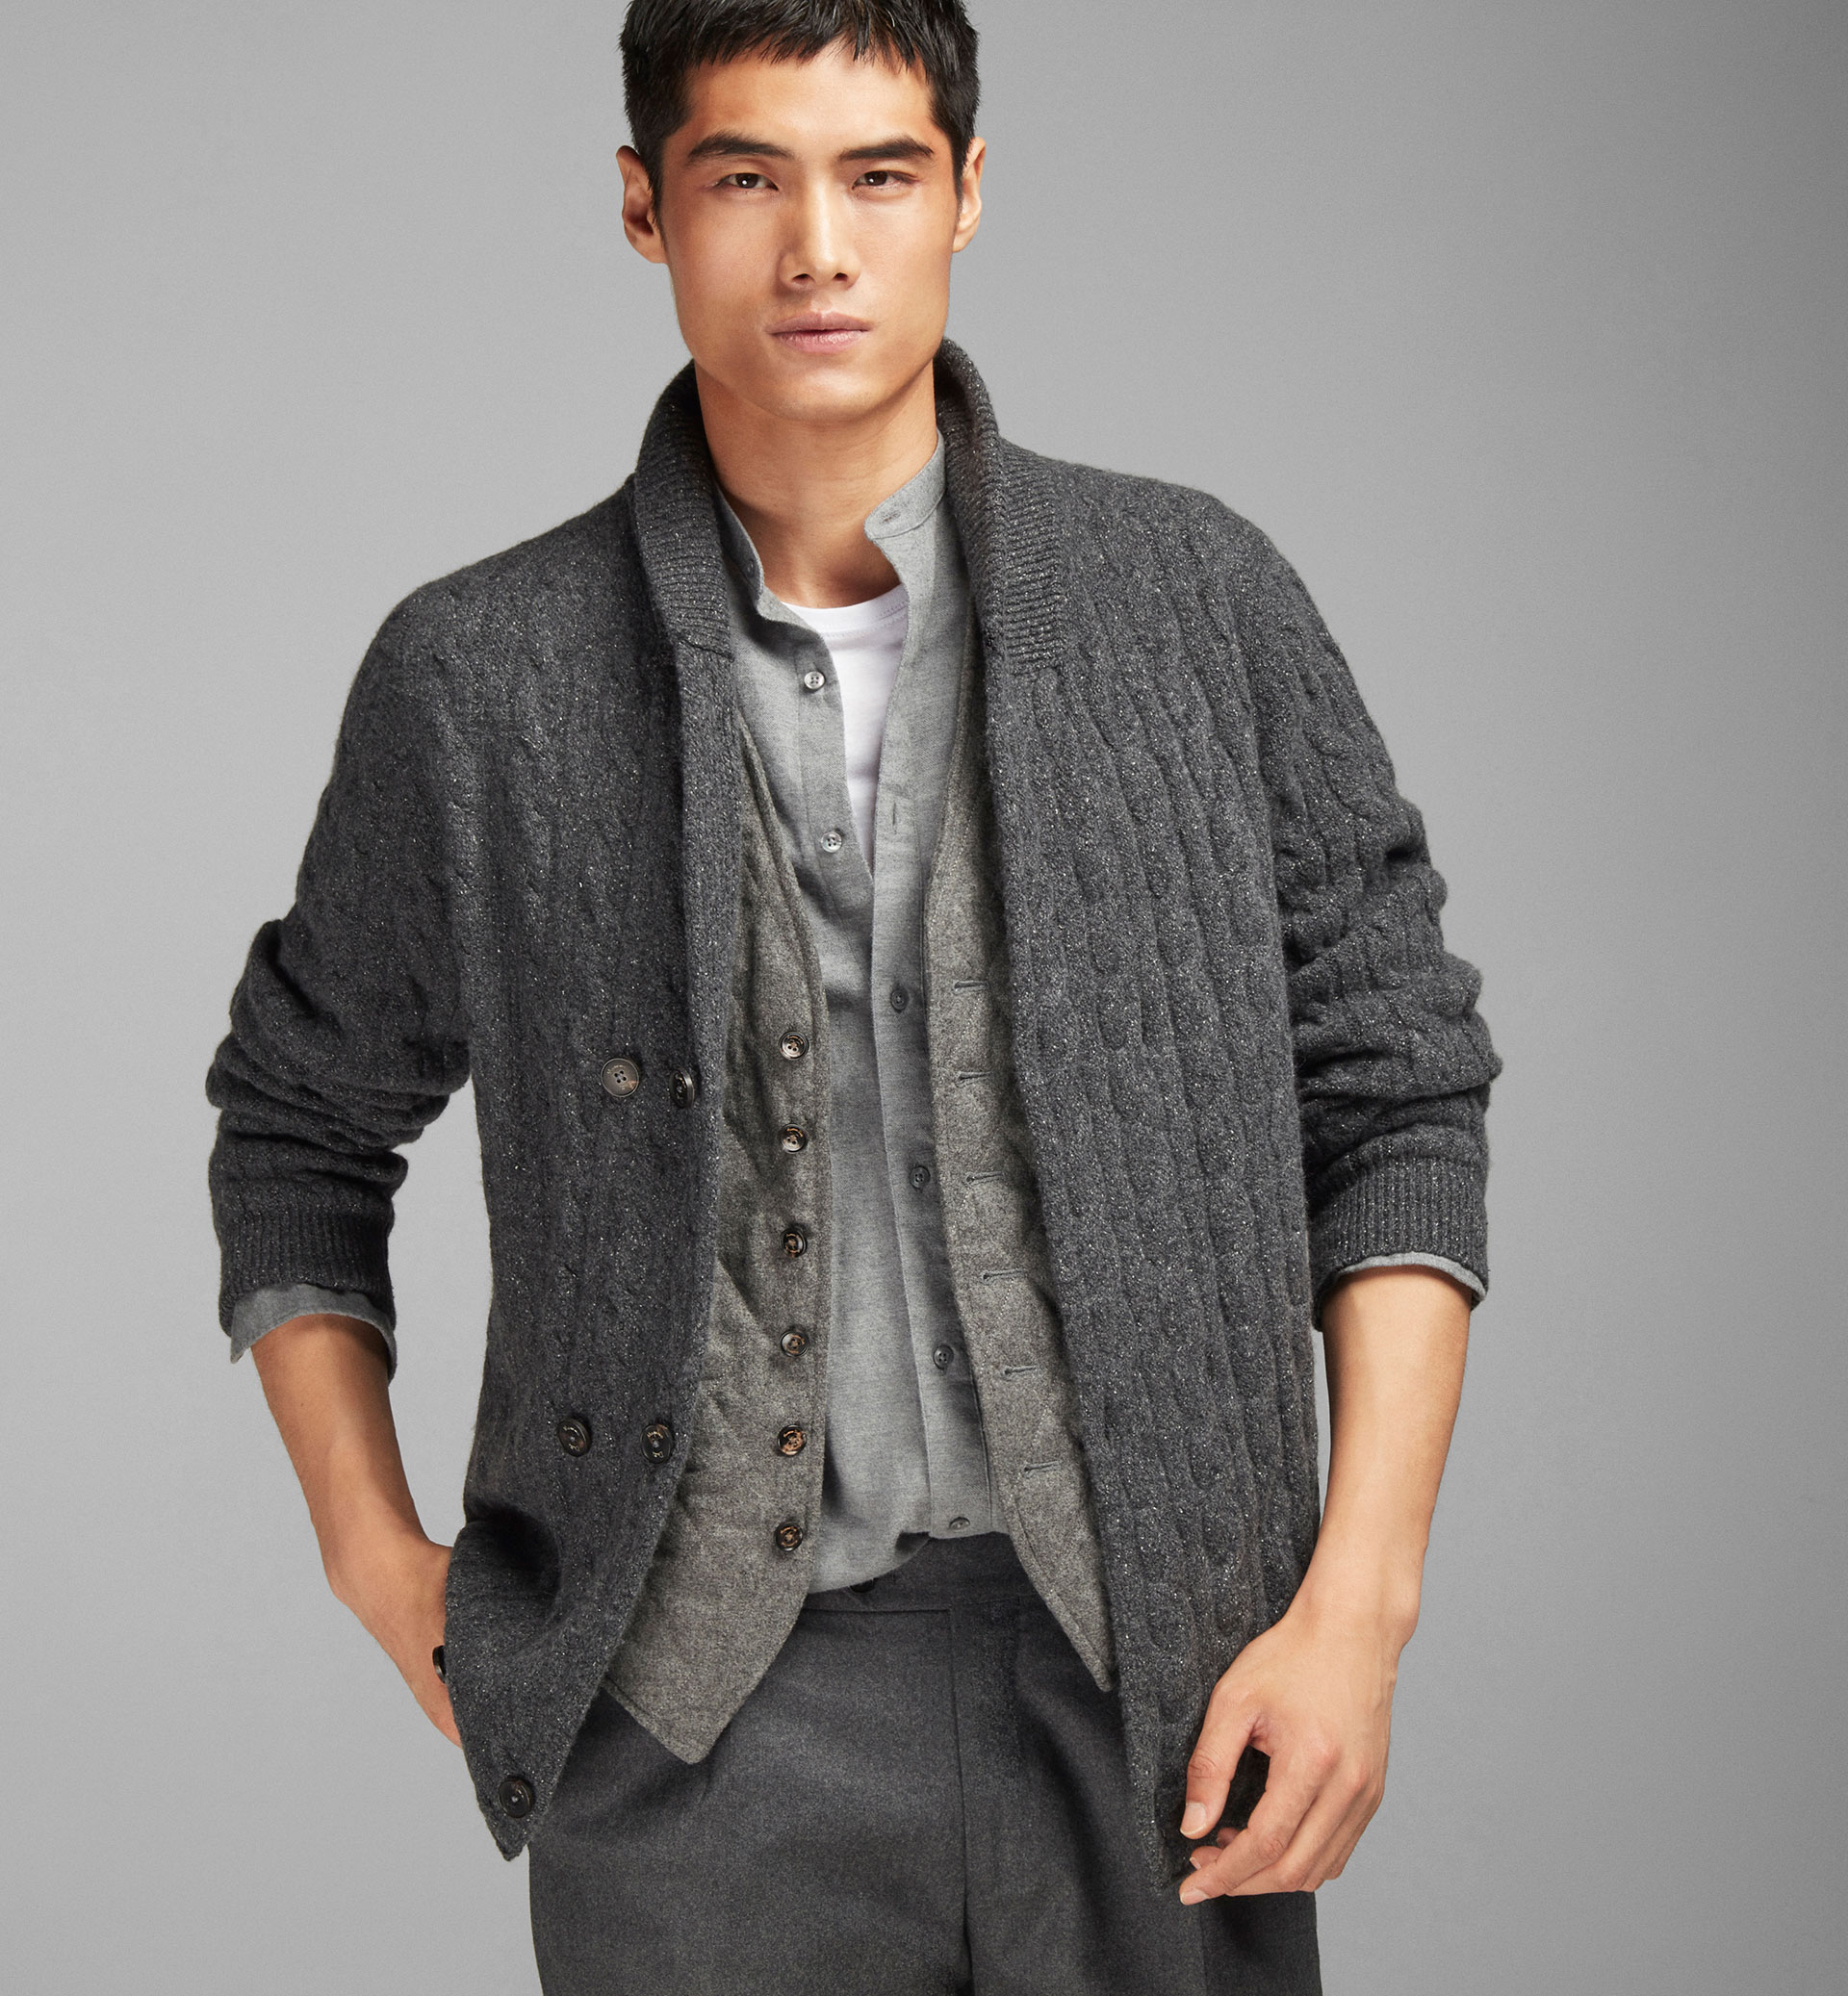 CABLE KNIT DOUBLE BREASTED CARDIGAN